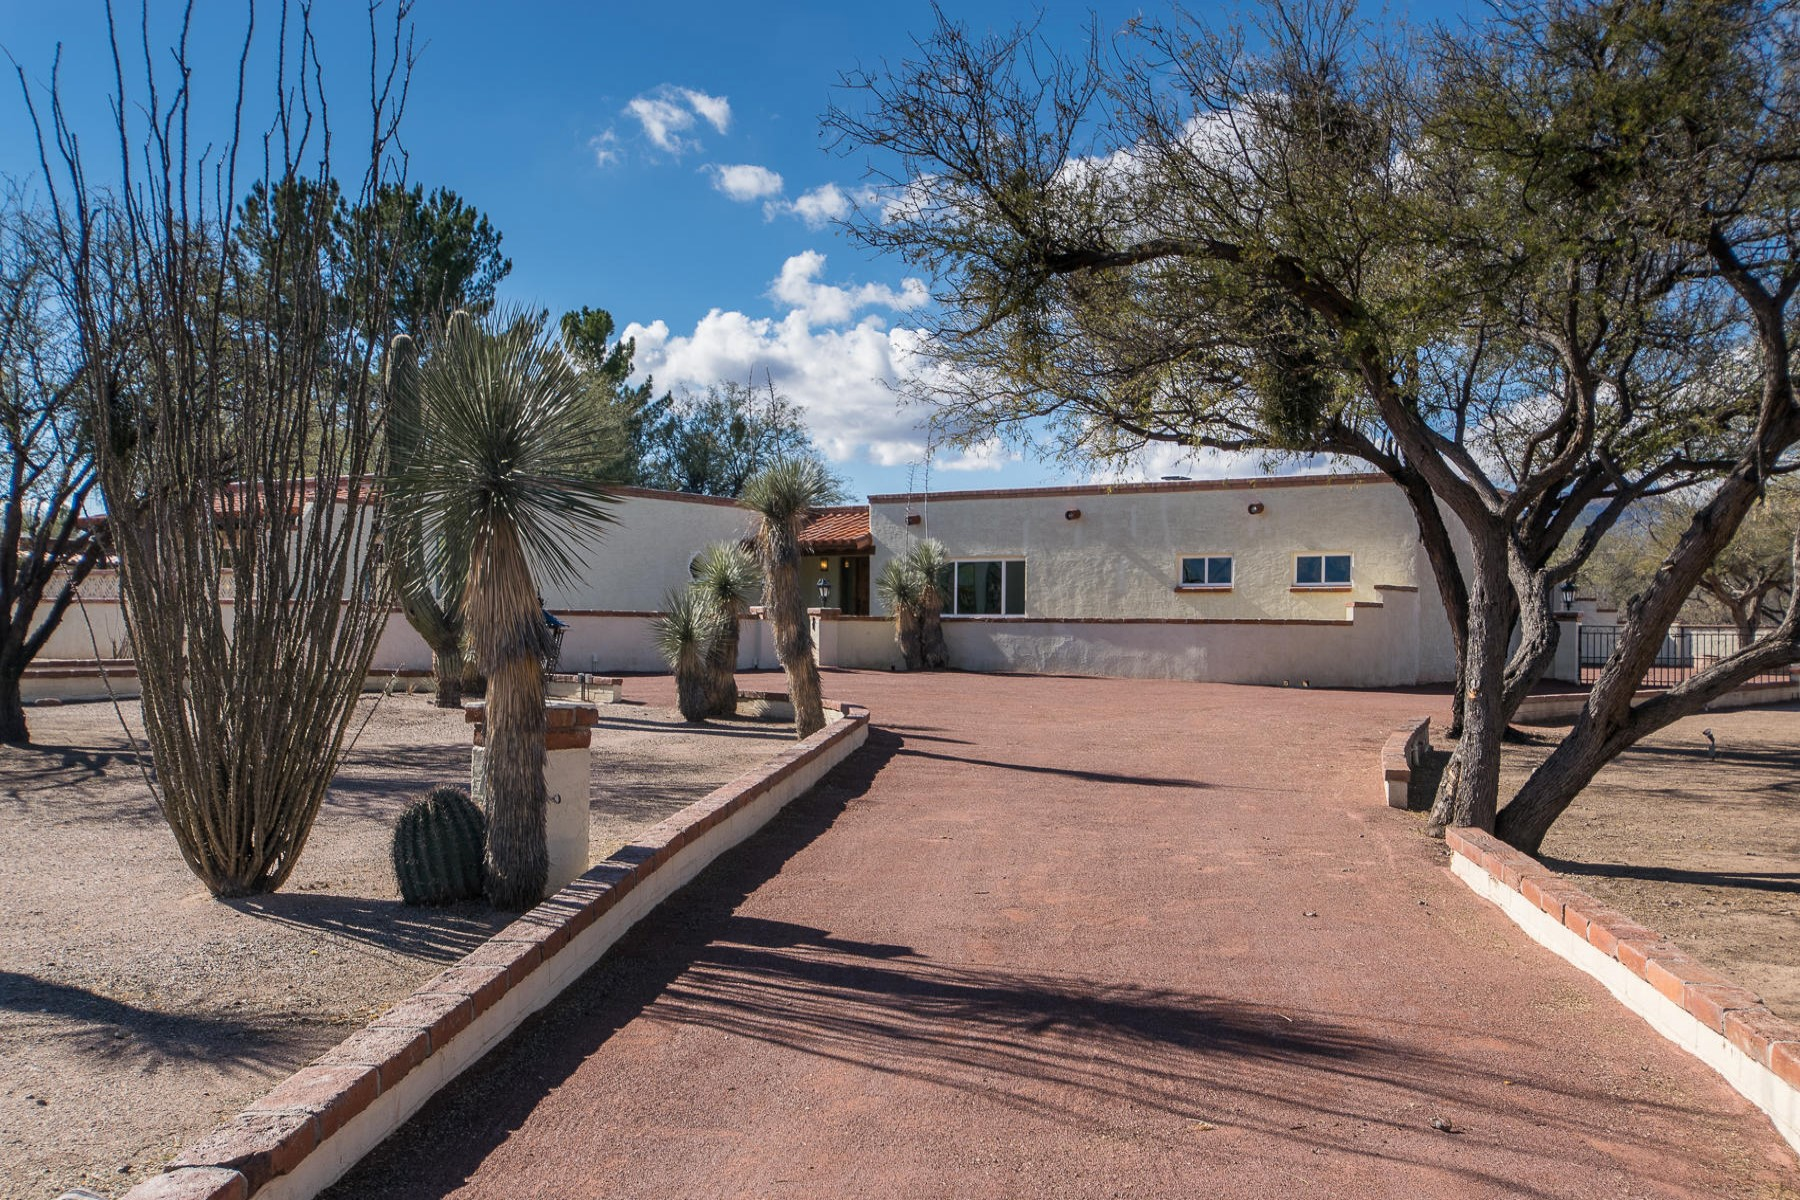 Single Family Home for Sale at Three bedroom home with views 2364 Camino Esplendido Tubac, Arizona, 85646 United States